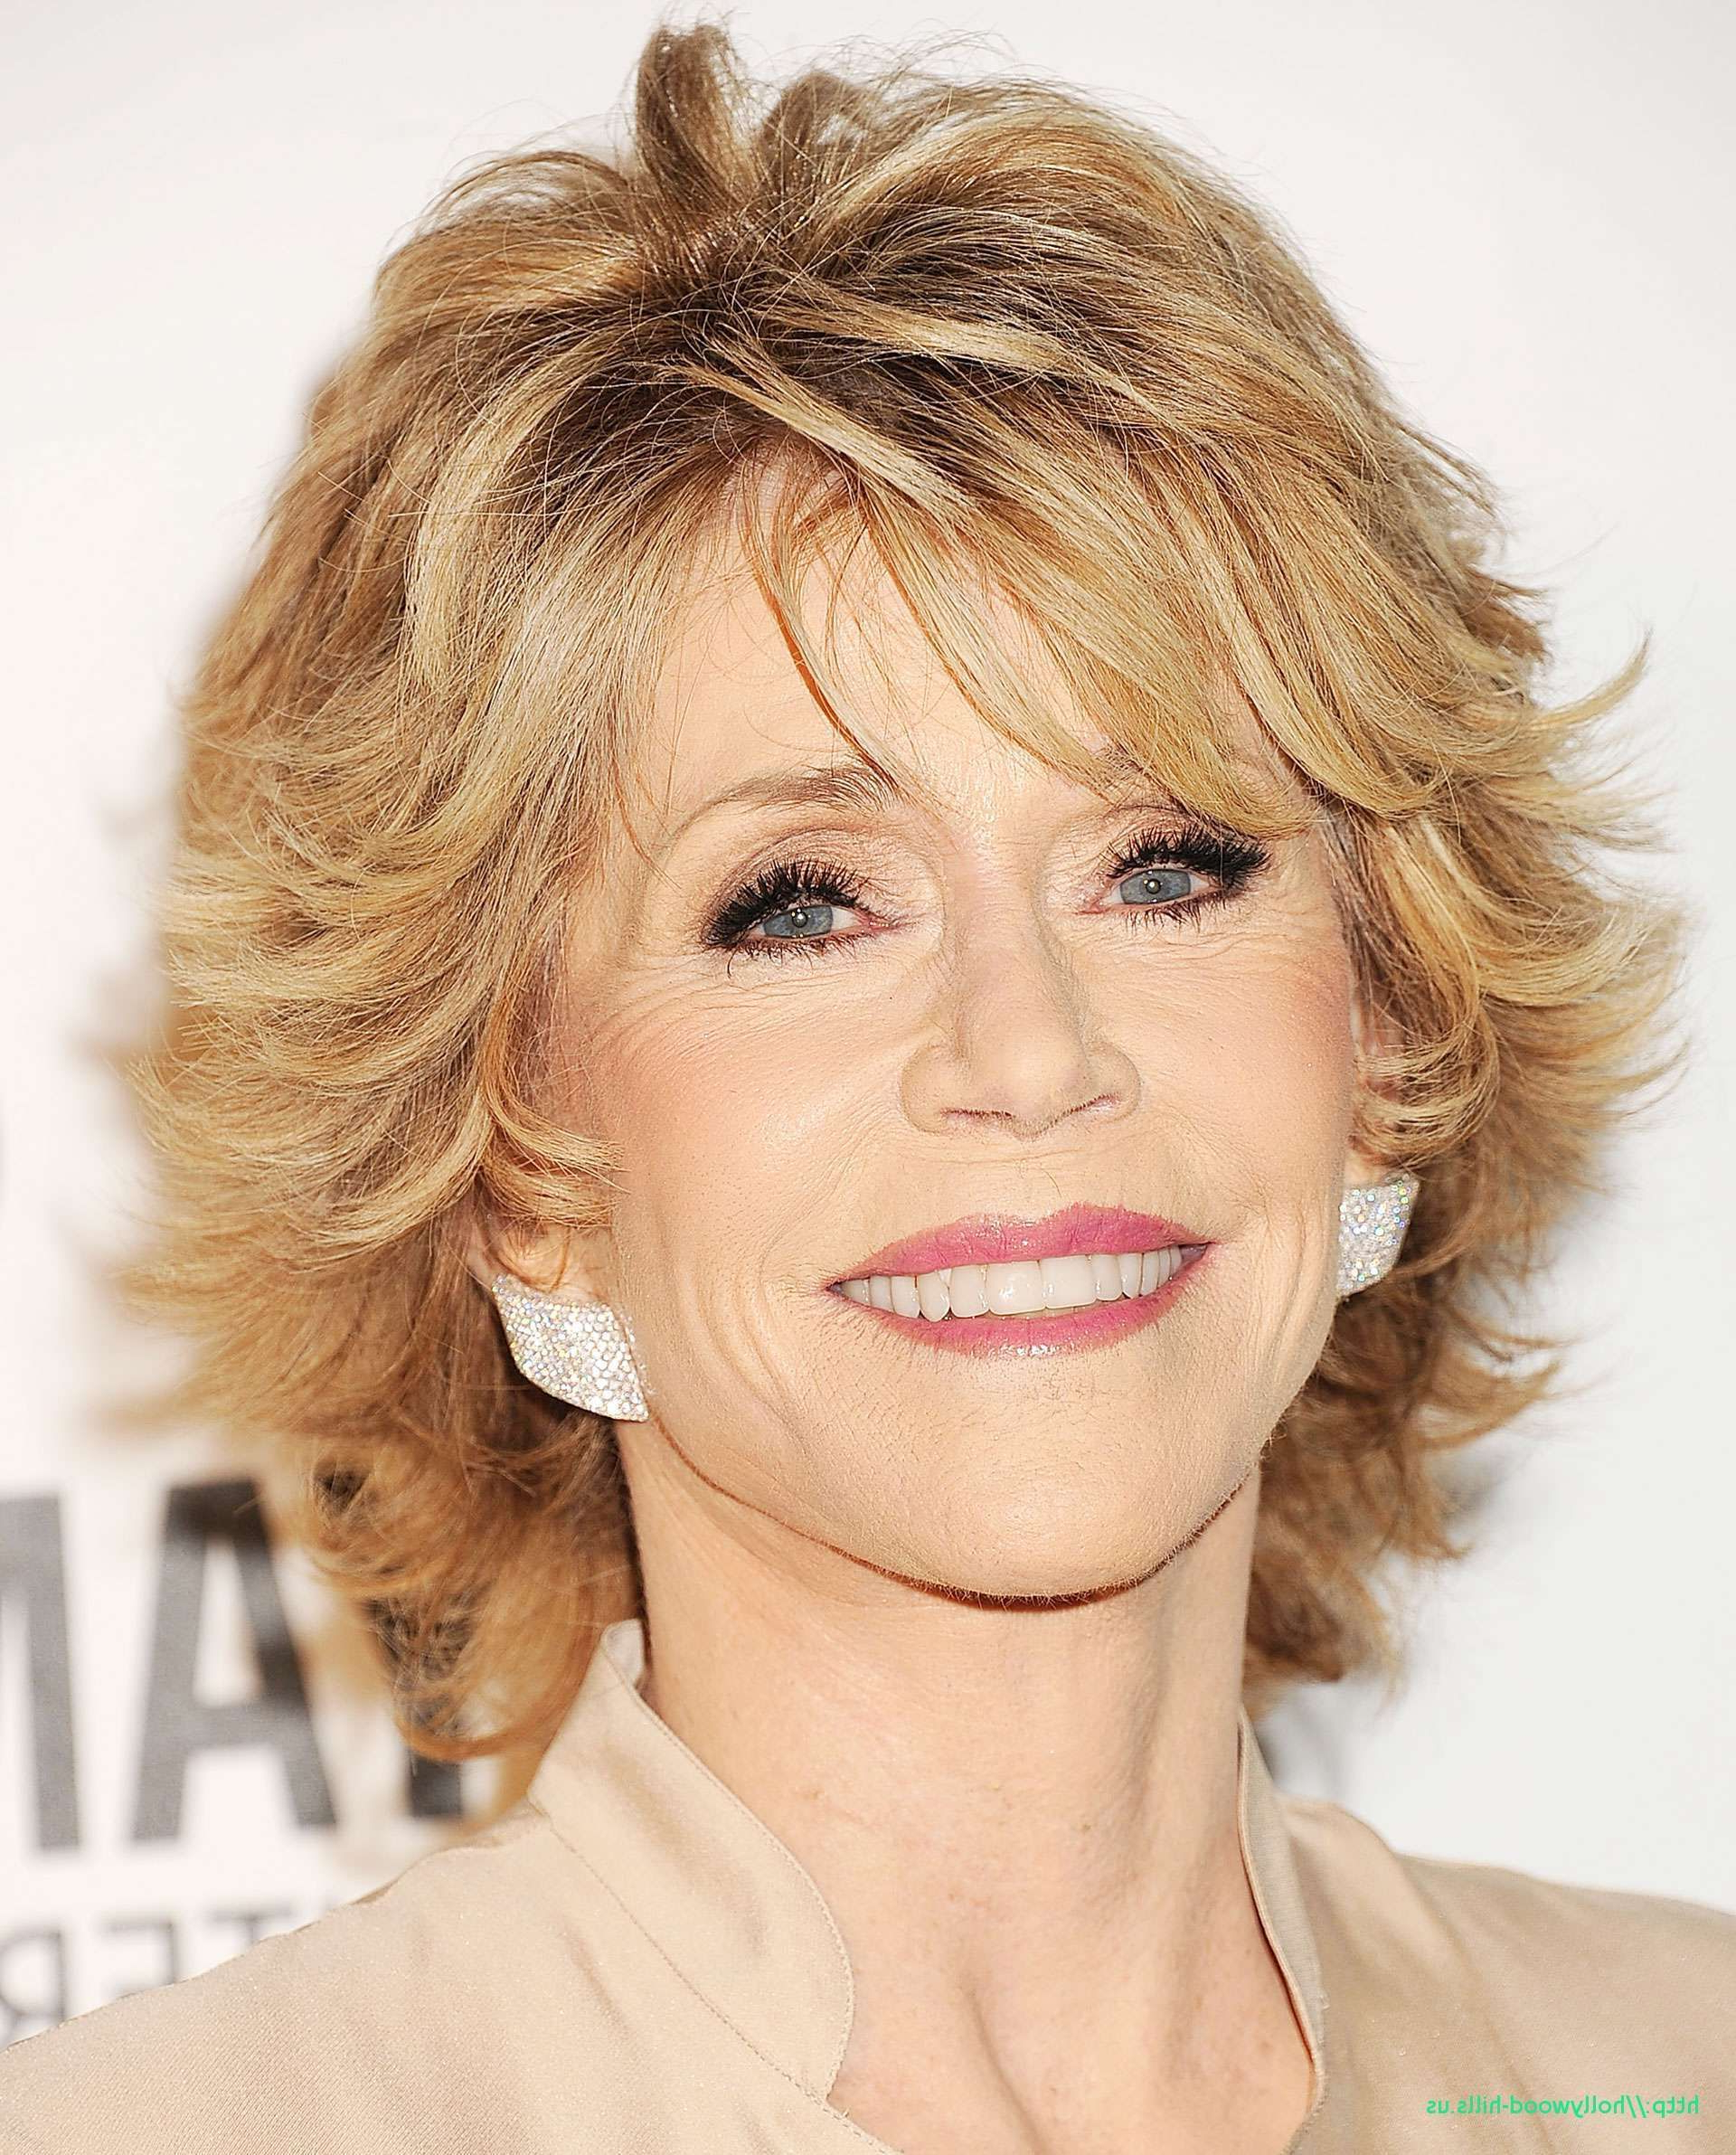 20 Short Haircuts For Women Over 60 With Fine Hair  Alwaysdc Within Short Hairstyles For Wavy Fine Hair (View 3 of 25)